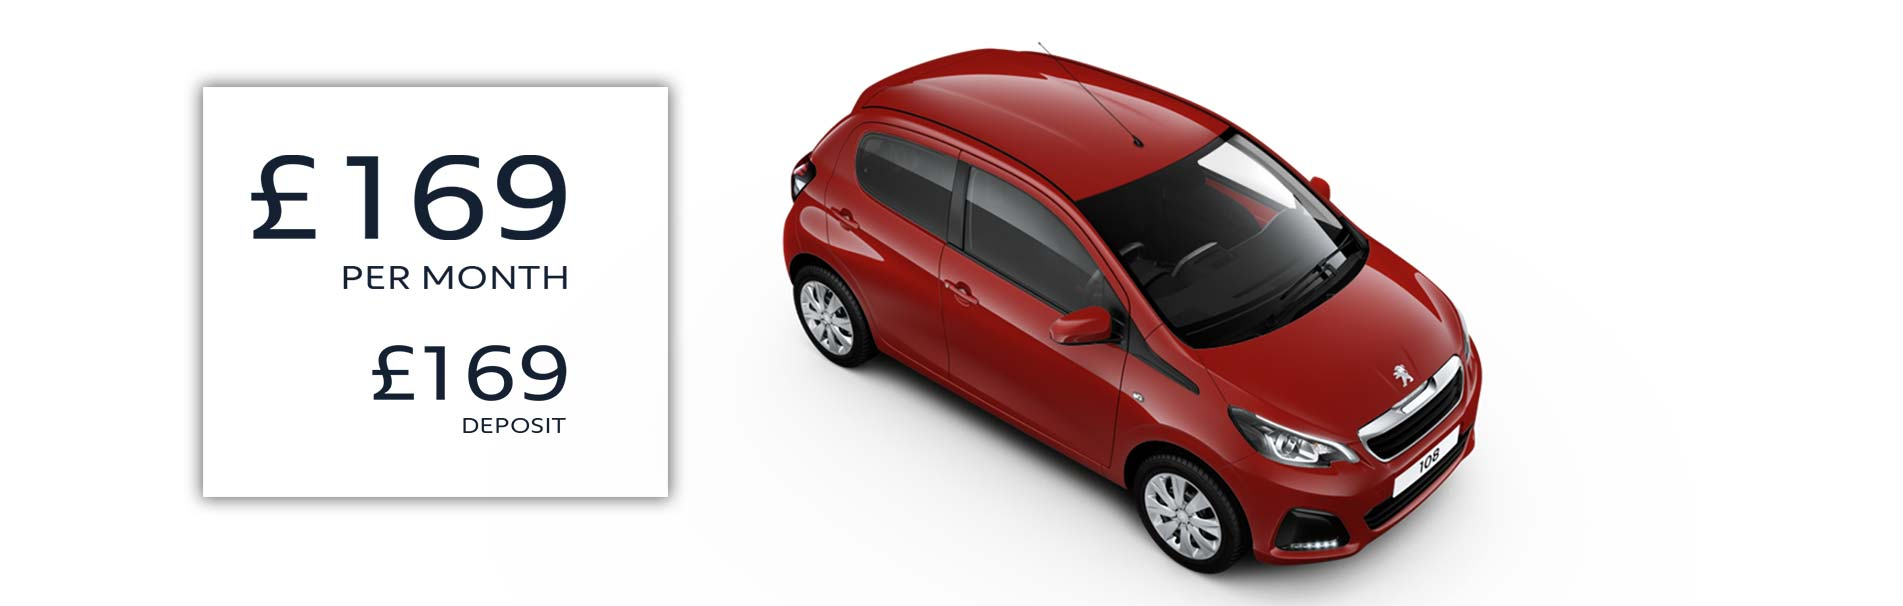 new-peugeot-108-active-72-passport-offer-march-specials-sli